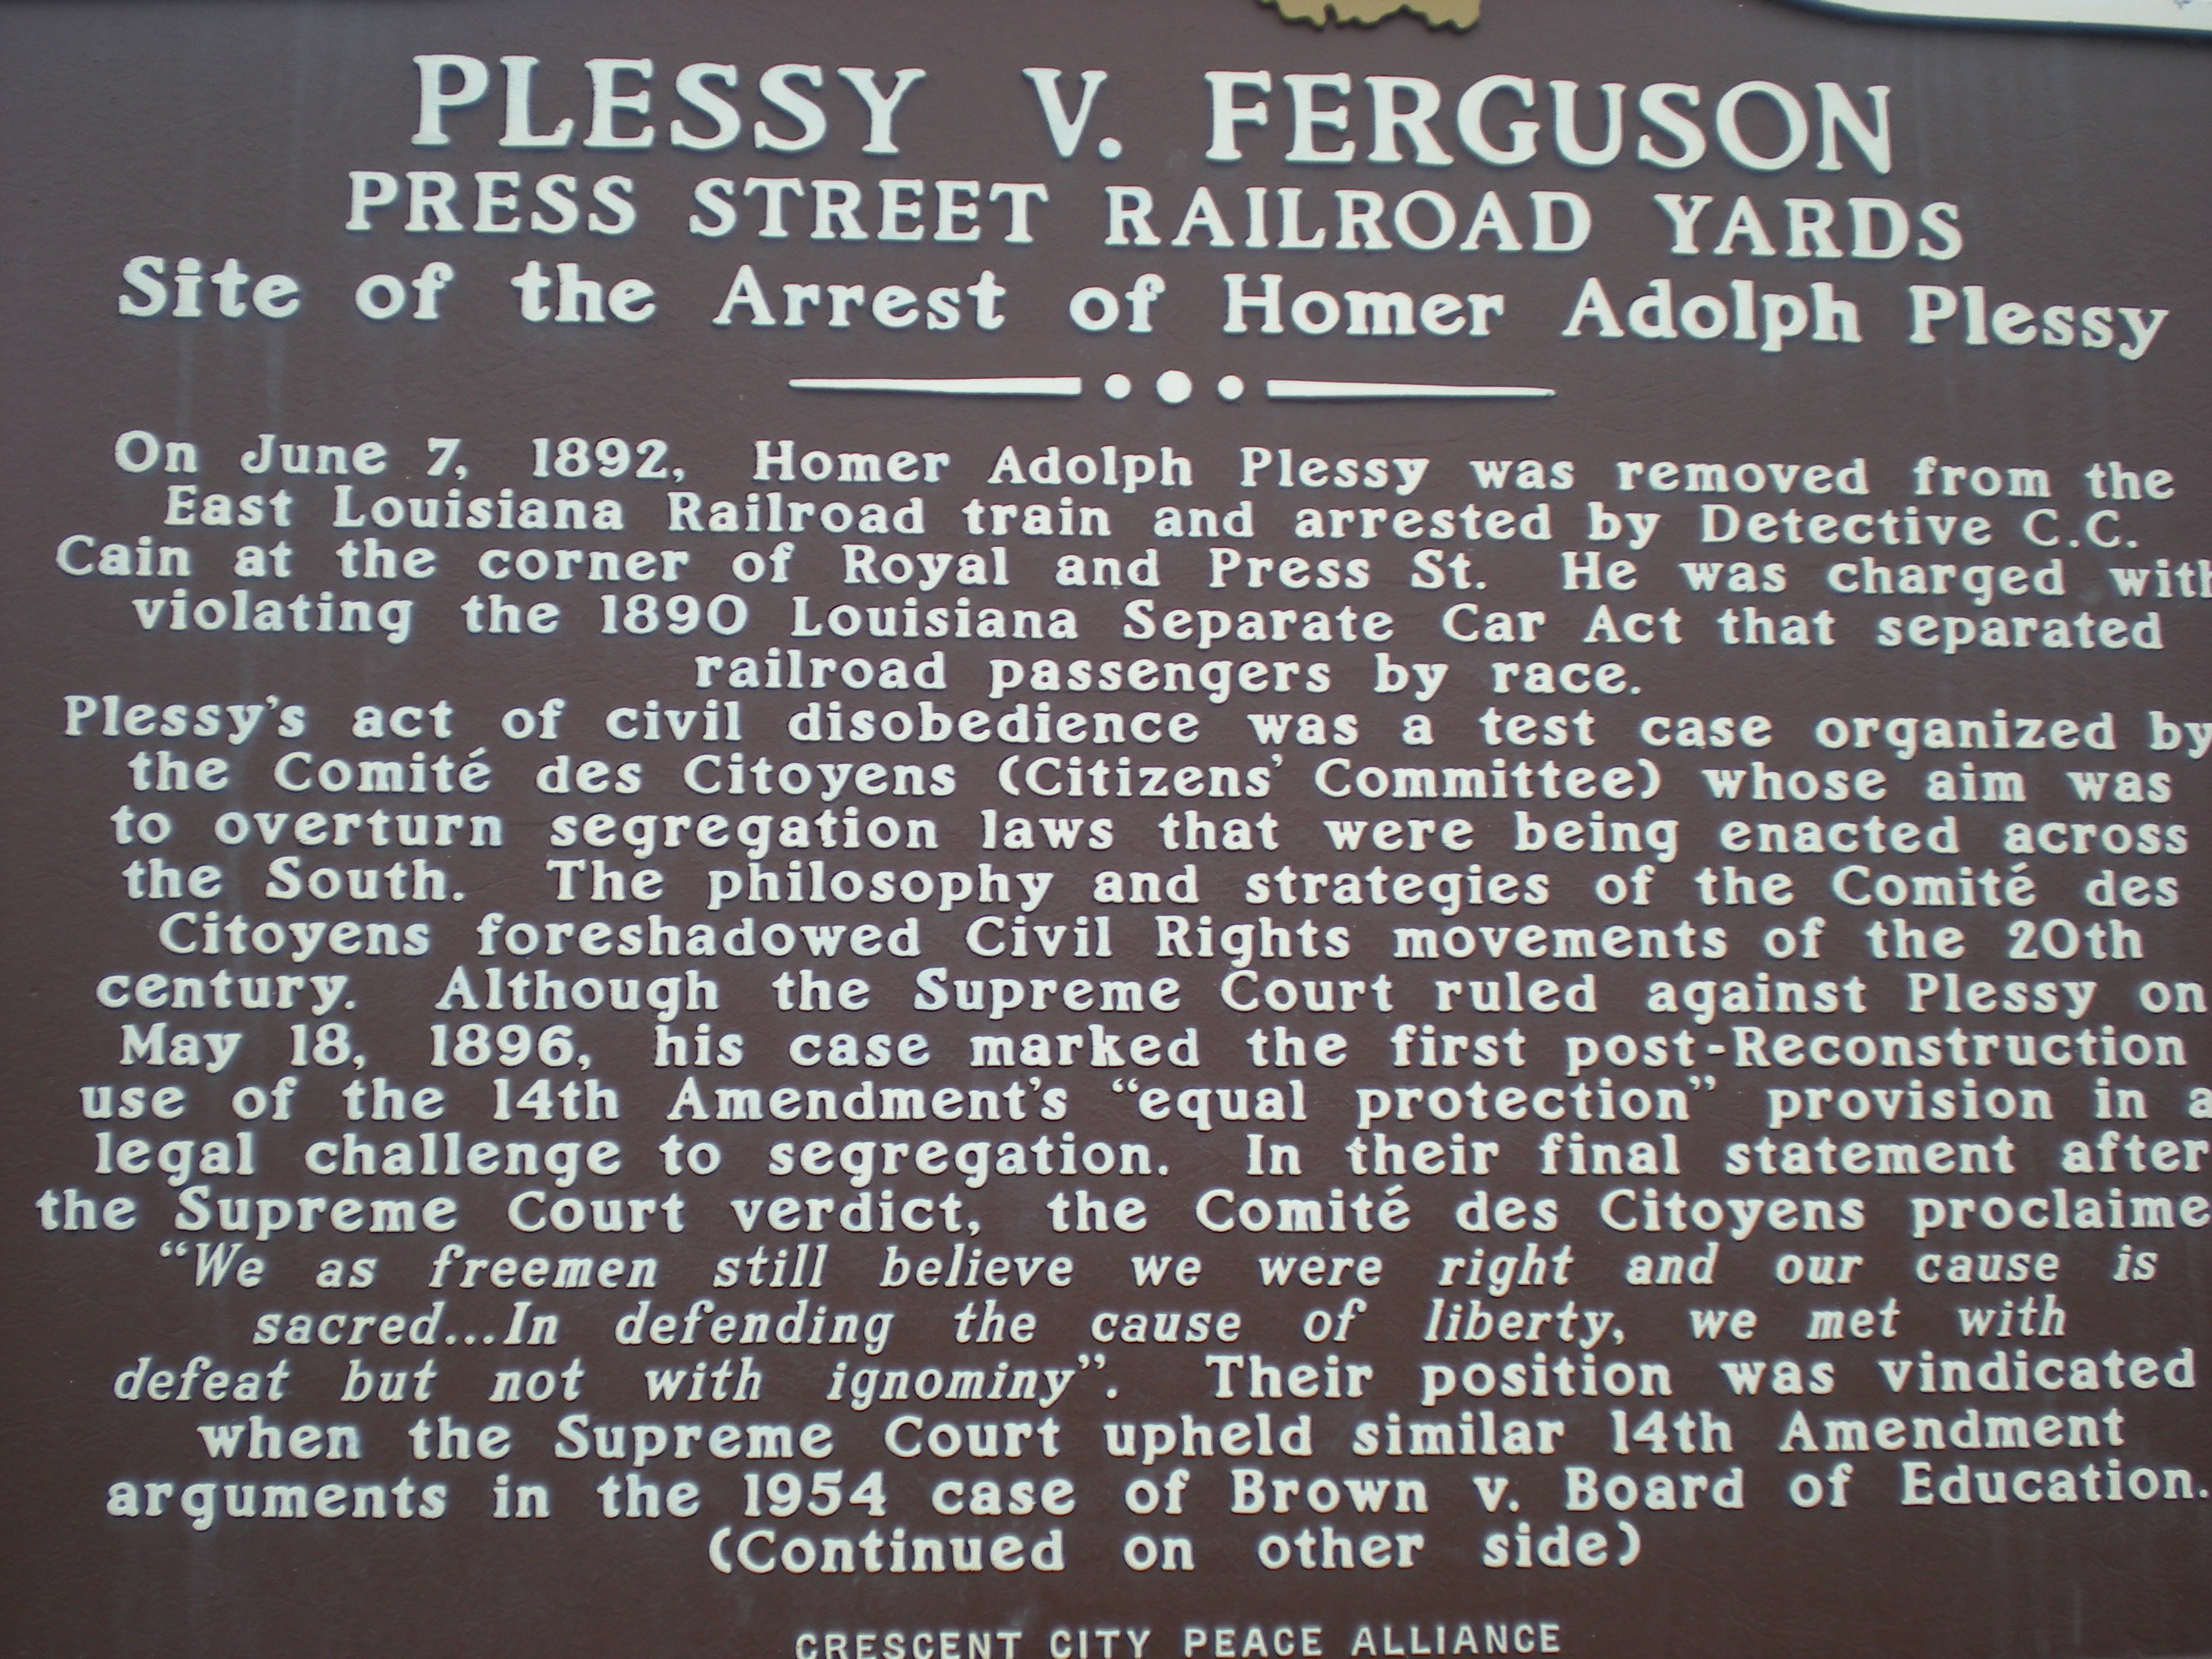 plessy v ferguson case essay On may 18, 1896, the us supreme court case plessy v ferguson  plessy v  ferguson decision upheld the principle of racial segregation over the next half- century  constitution of the united states of america: analysis and  interpretation.